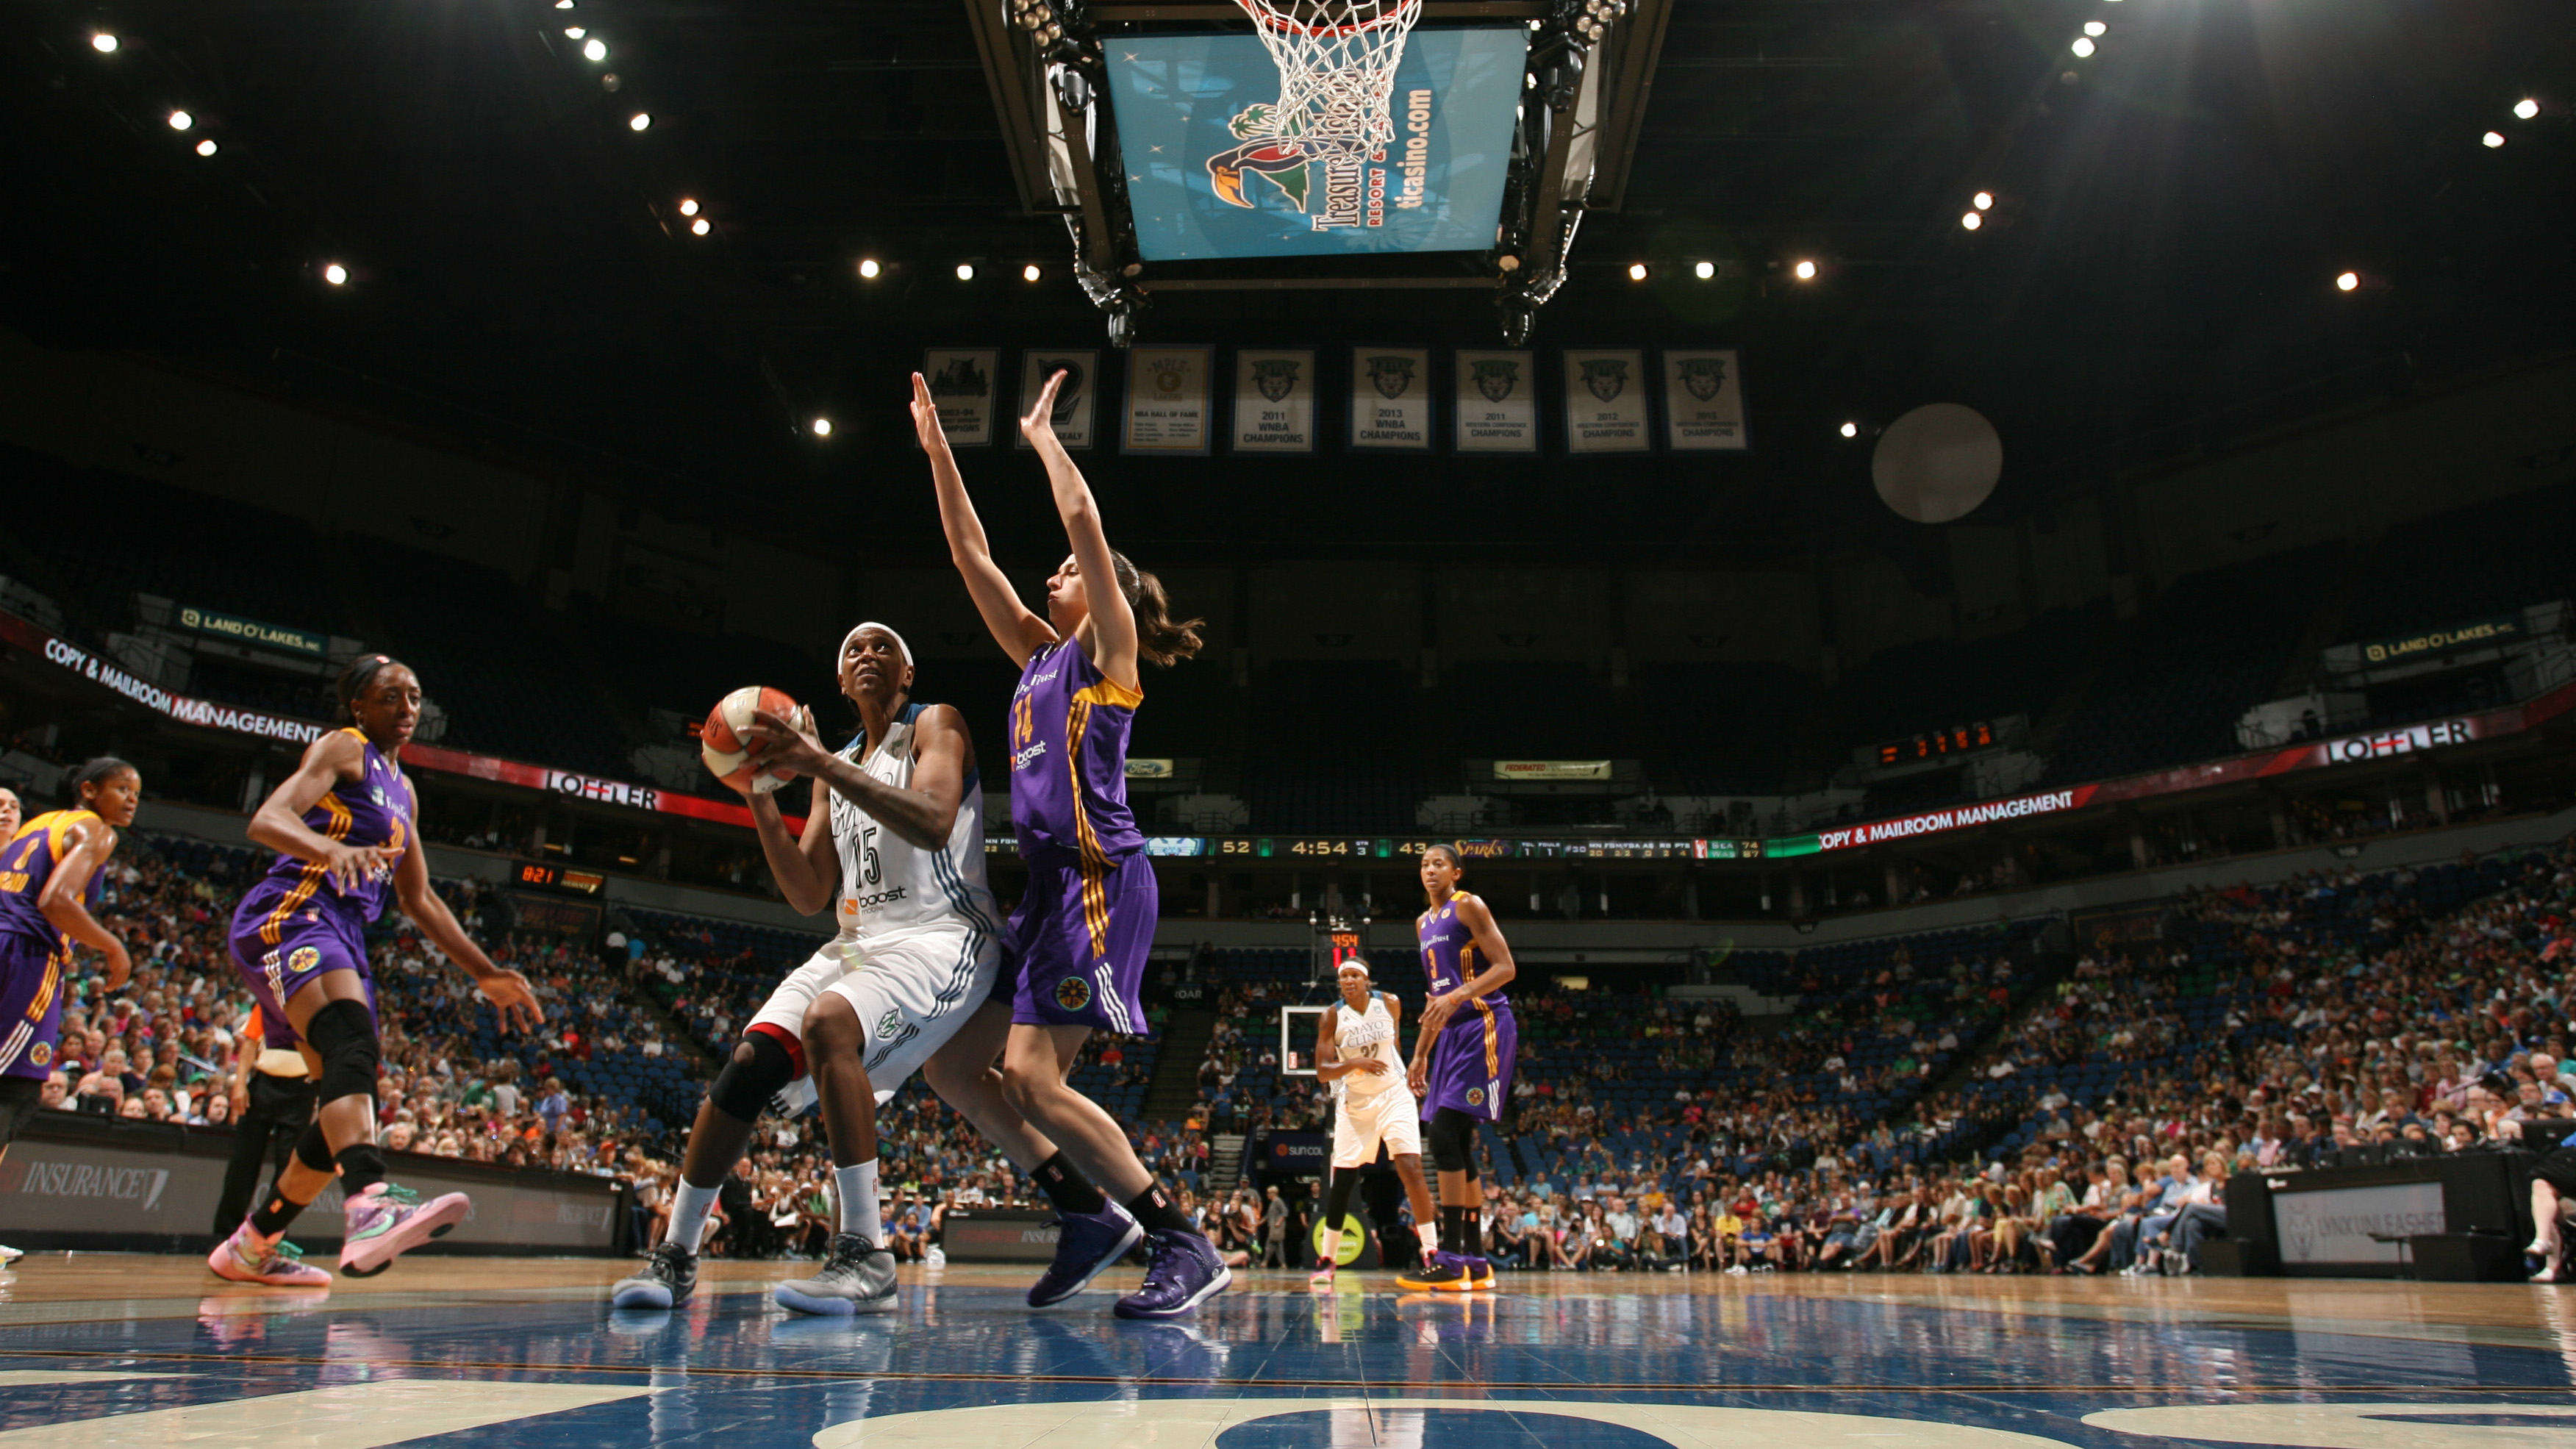 Lynx center Asjha Jones provided Minnesota with some timely baskets off the bench, finishing with eight points on 3-of-4 shooting (75 percent).